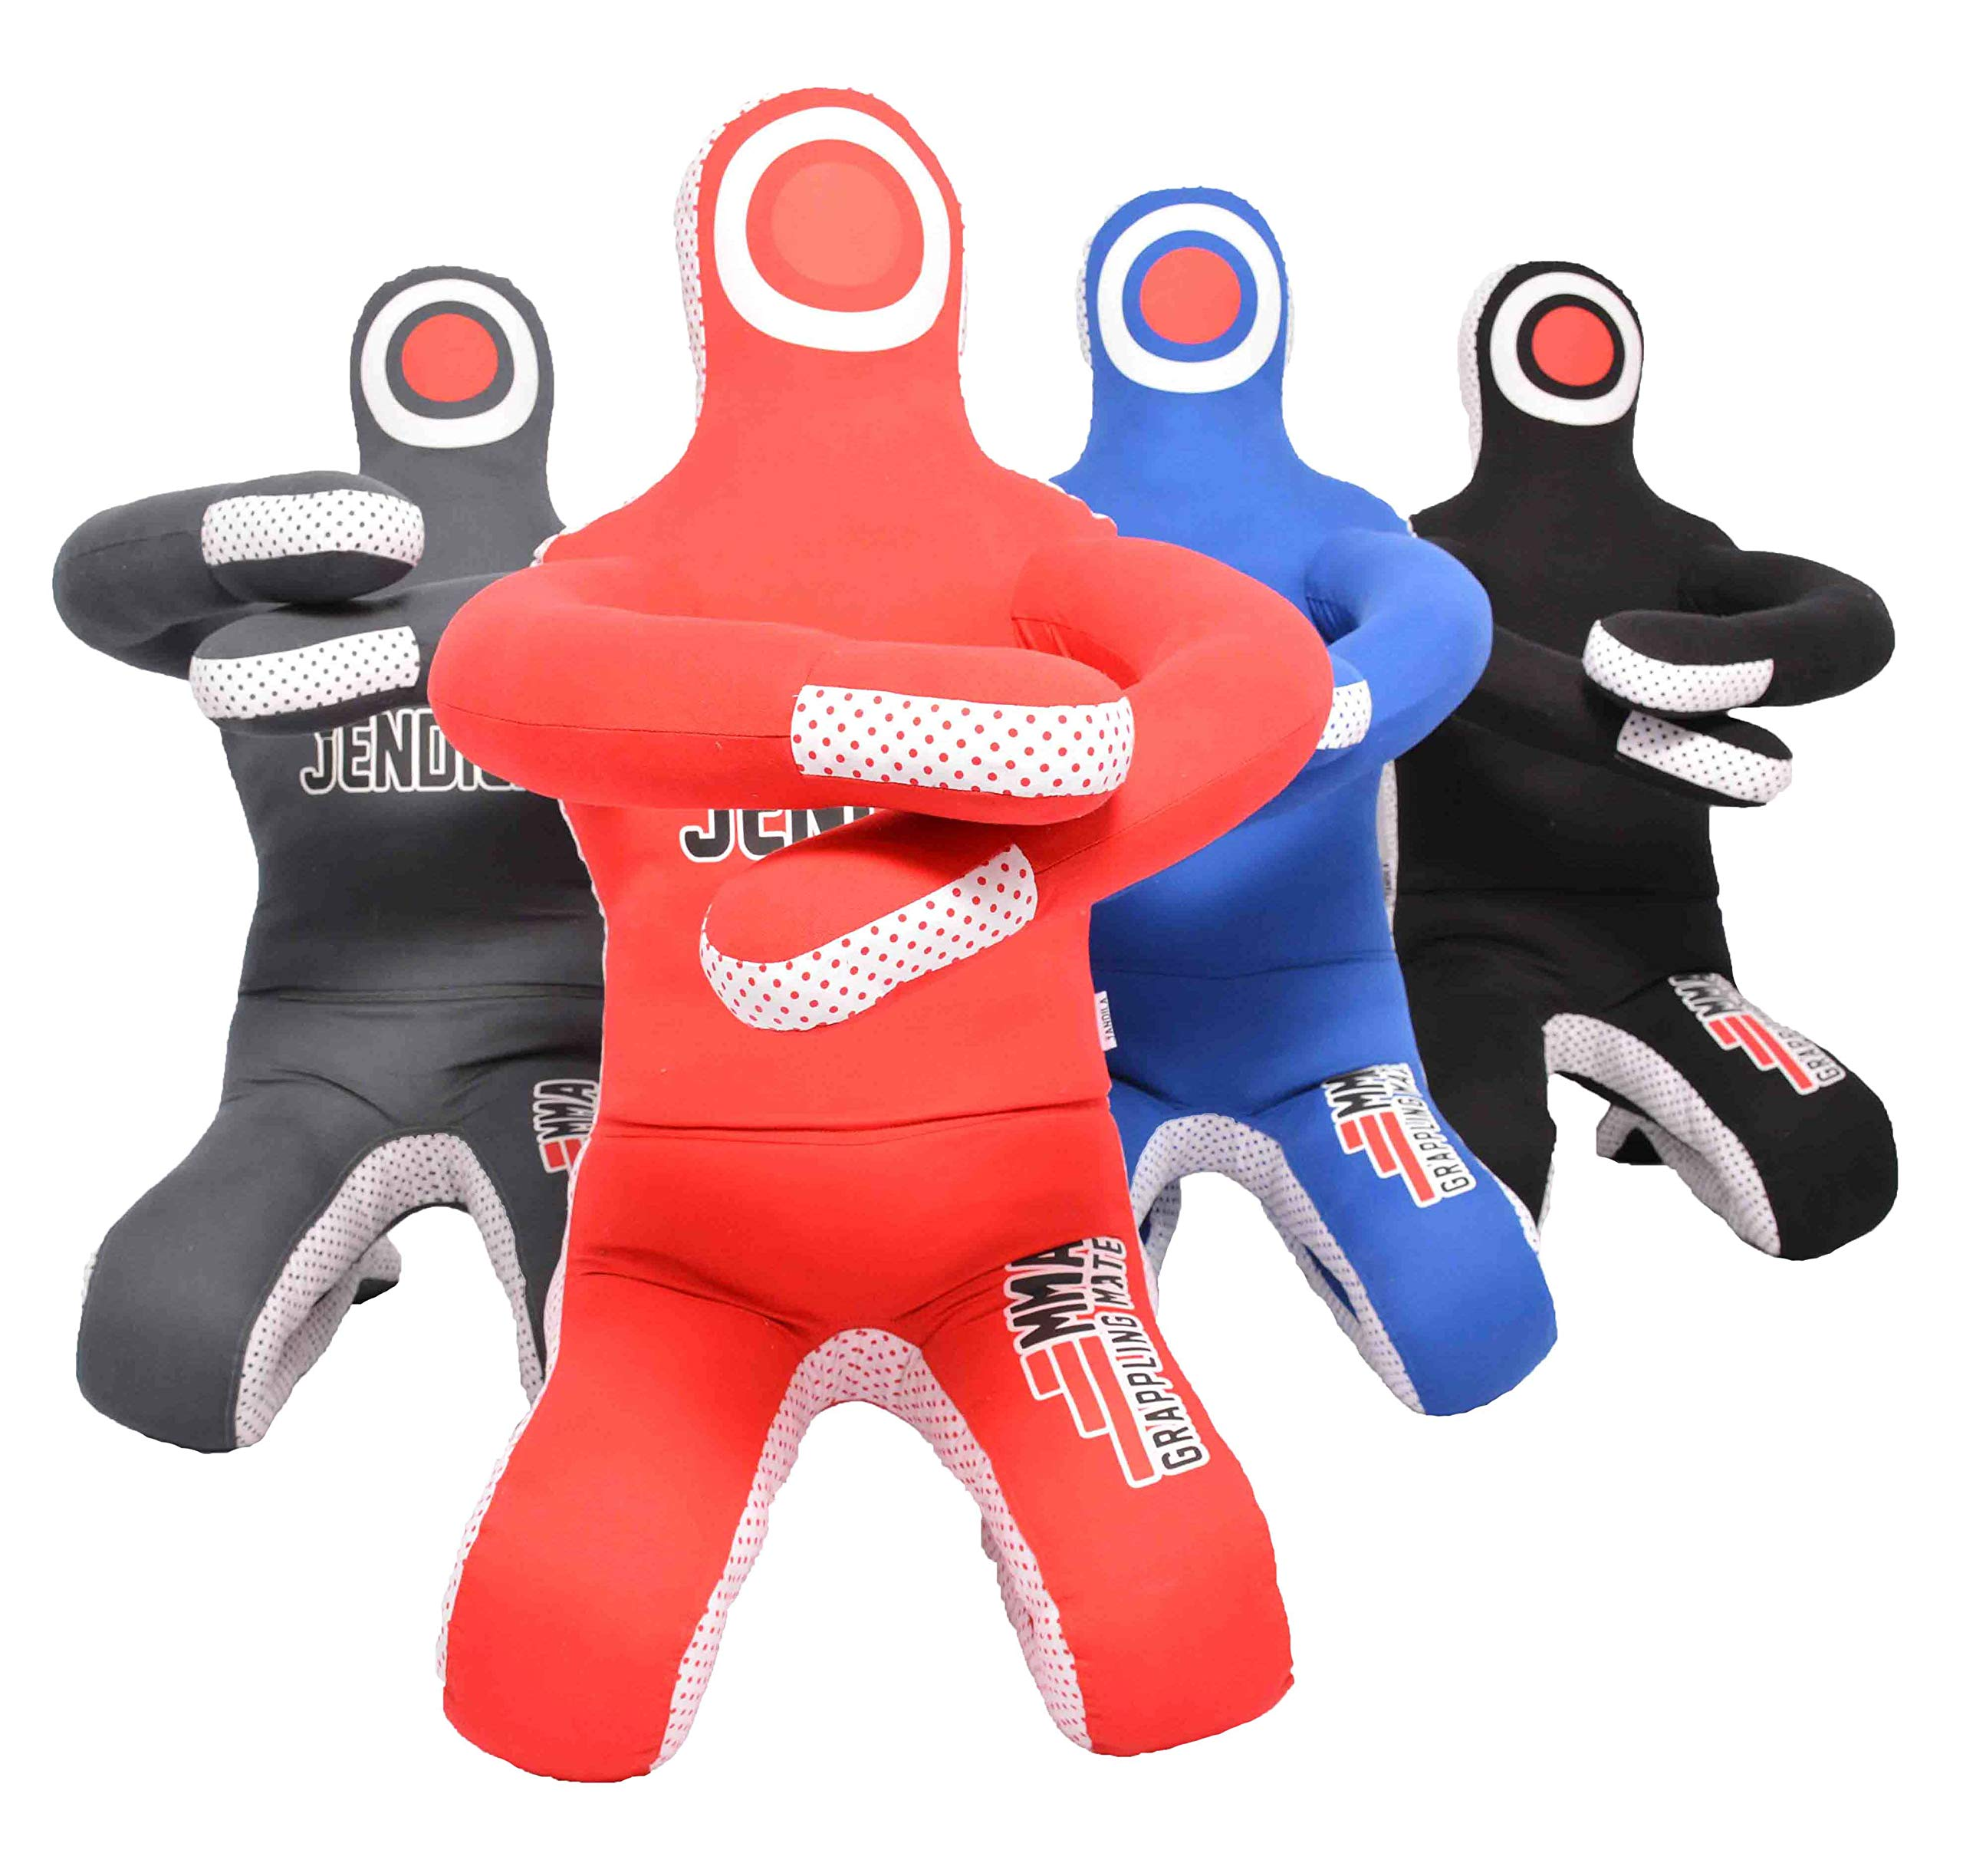 Grappling Dummy MMA Jiu Jitsu - Grappling Wrestling Dummy - Made from Durable Canvas Fabrics - MMA Dummy for Multiple Drills UNFILLED (Red, 42'') by Jendila